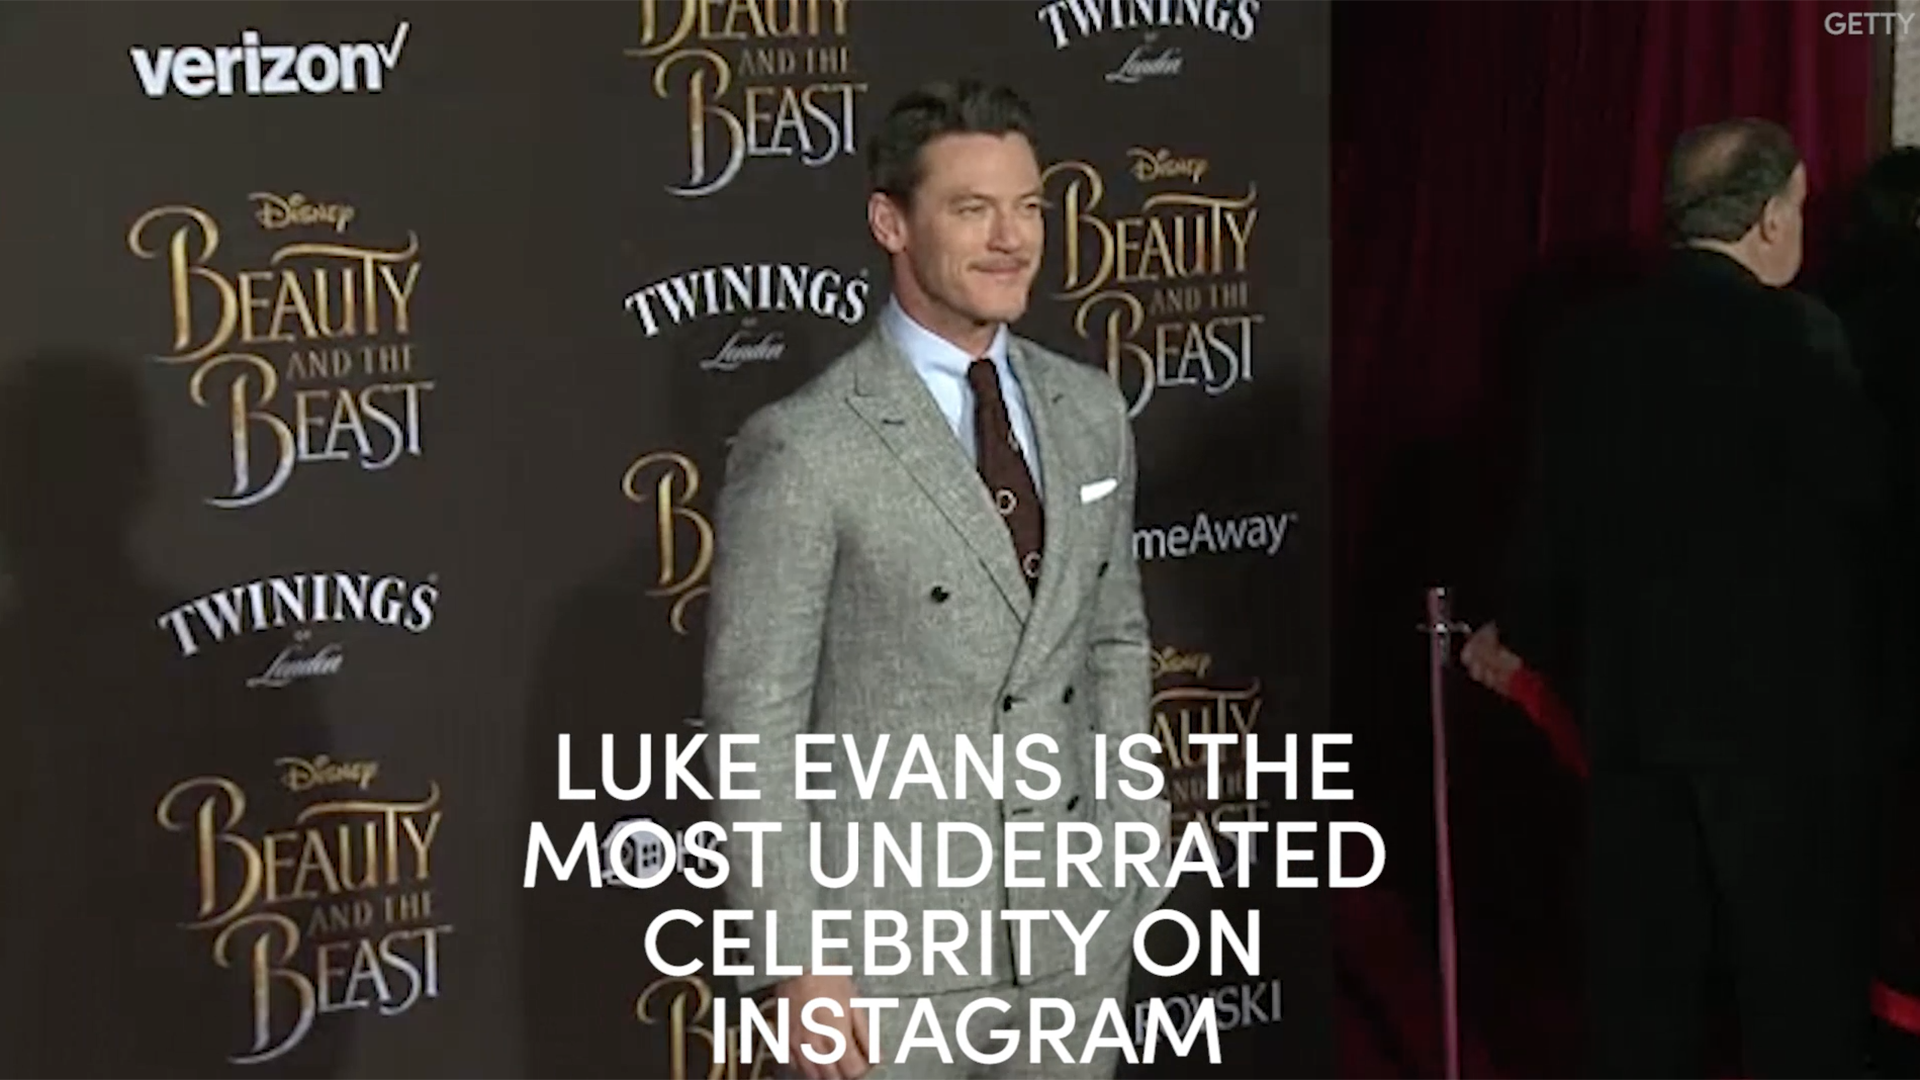 Luke Evans Shows Off His Pride—and Ripped Abs—in Instagram Thirst Trap